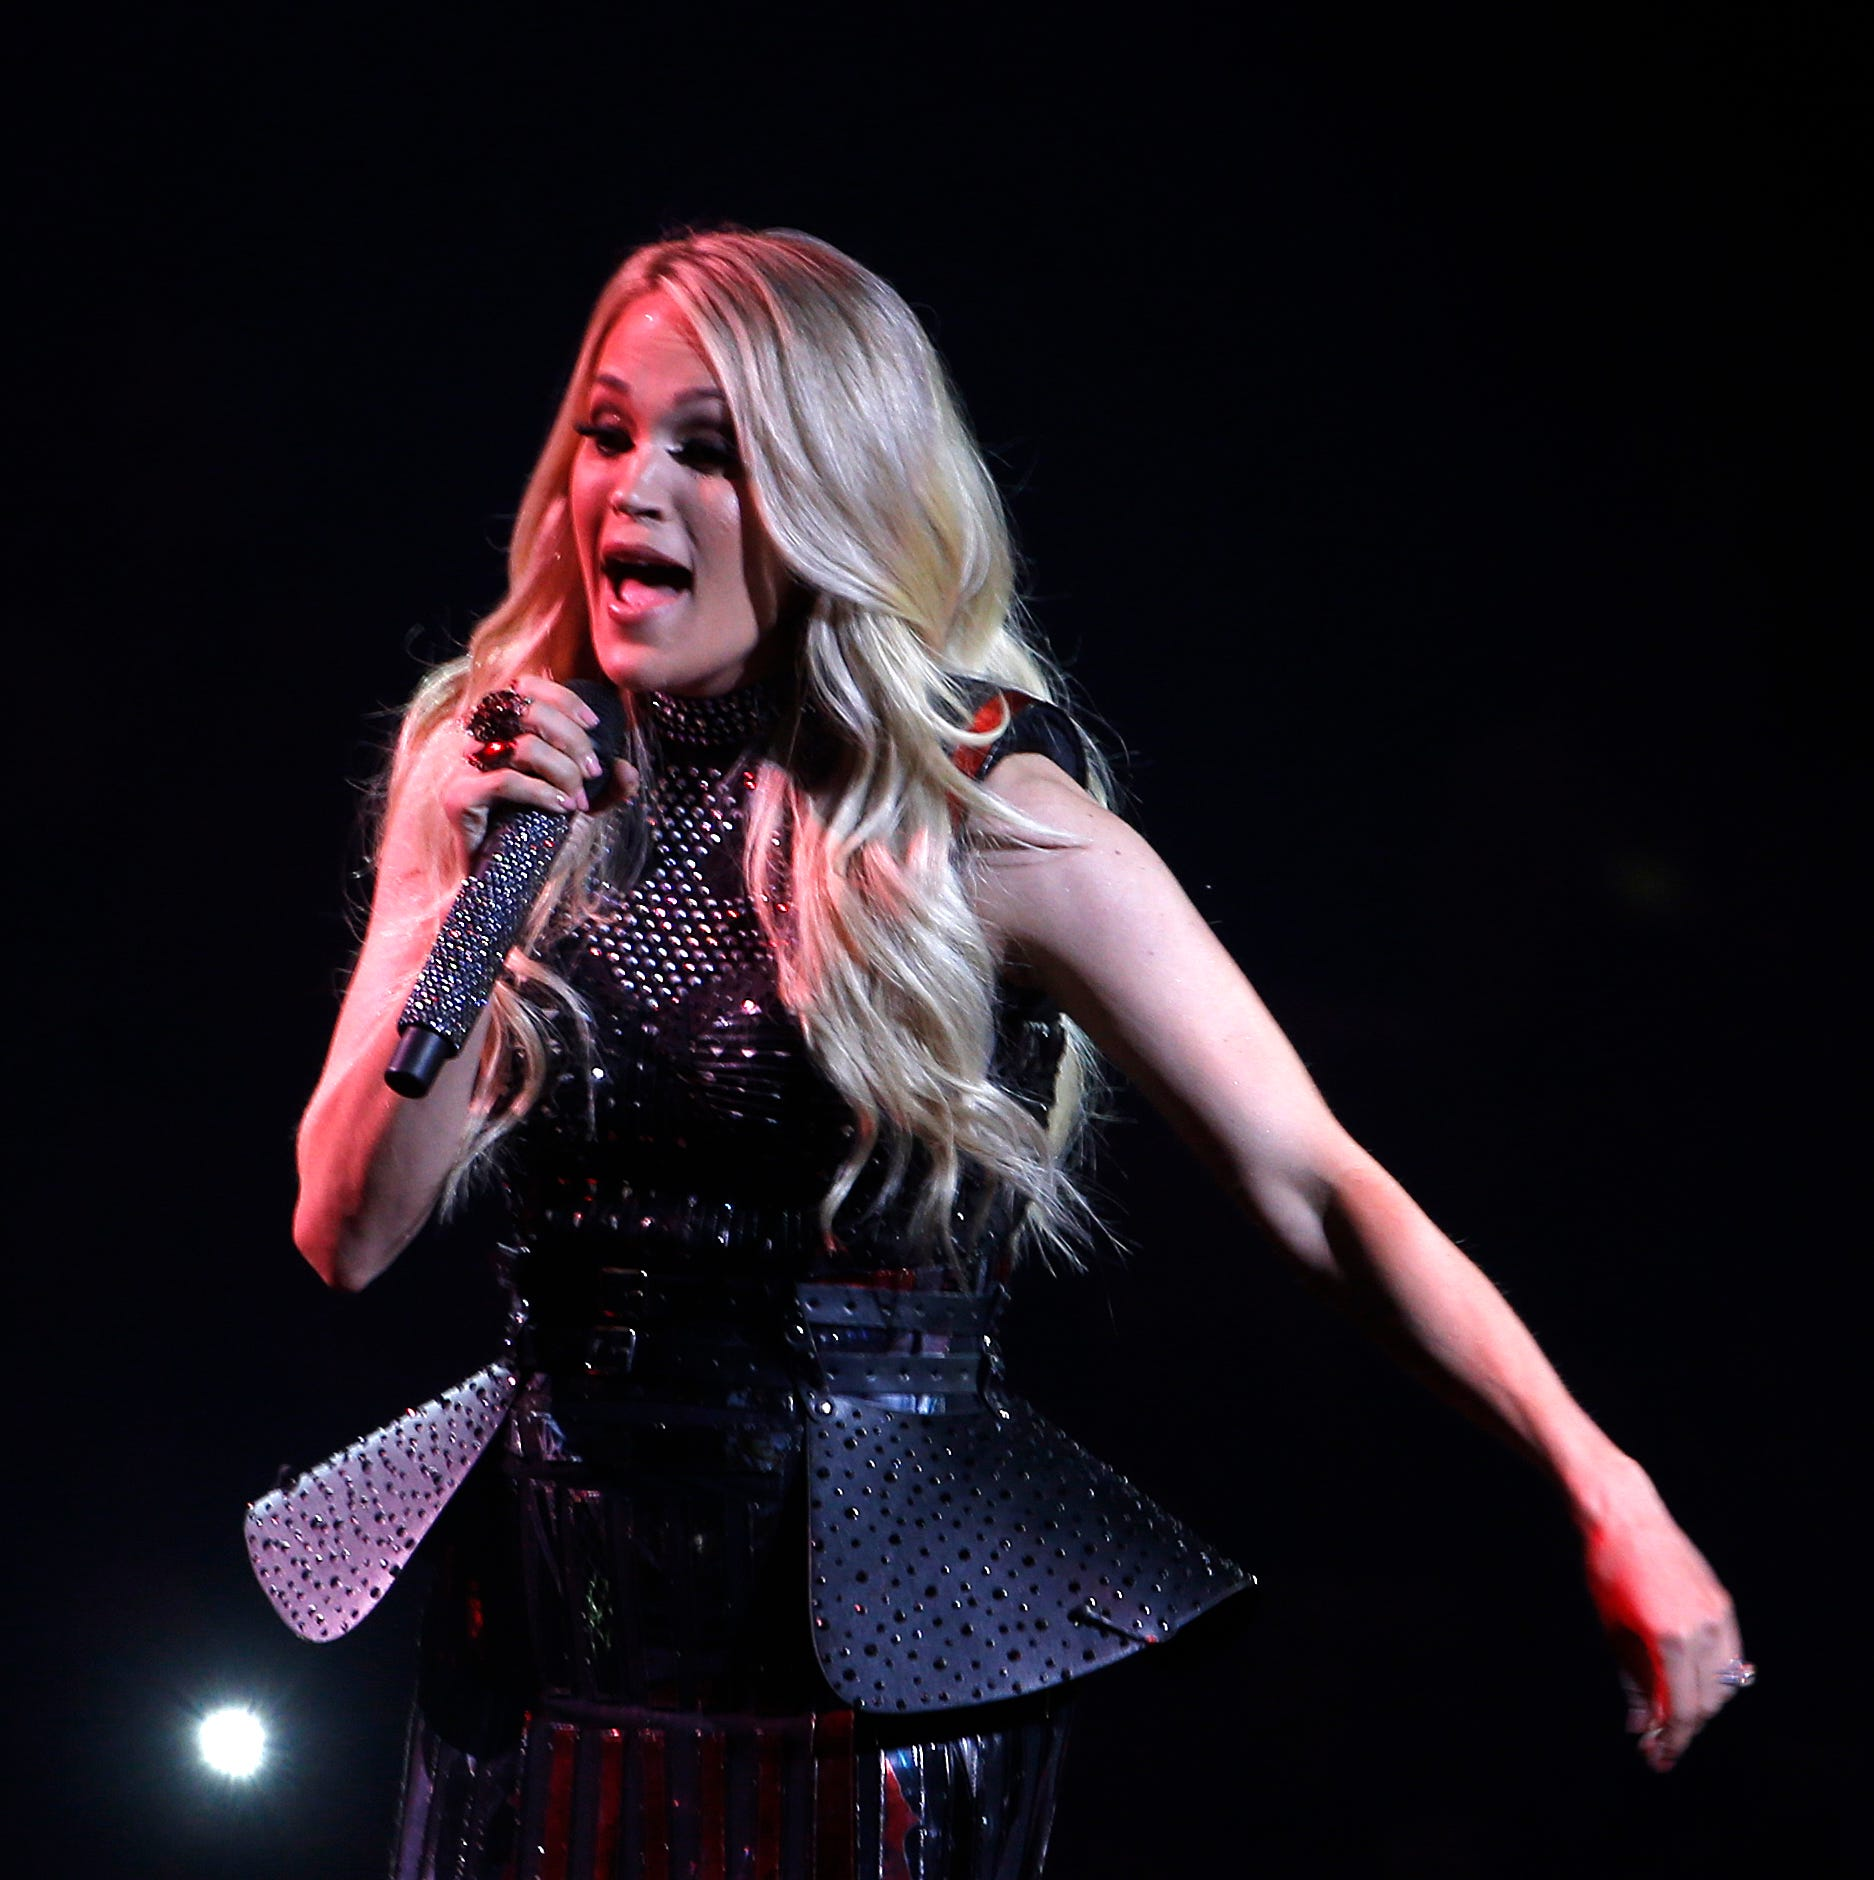 Carrie Underwood's Cry Pretty Tour puts the spotlight on female voices in country music